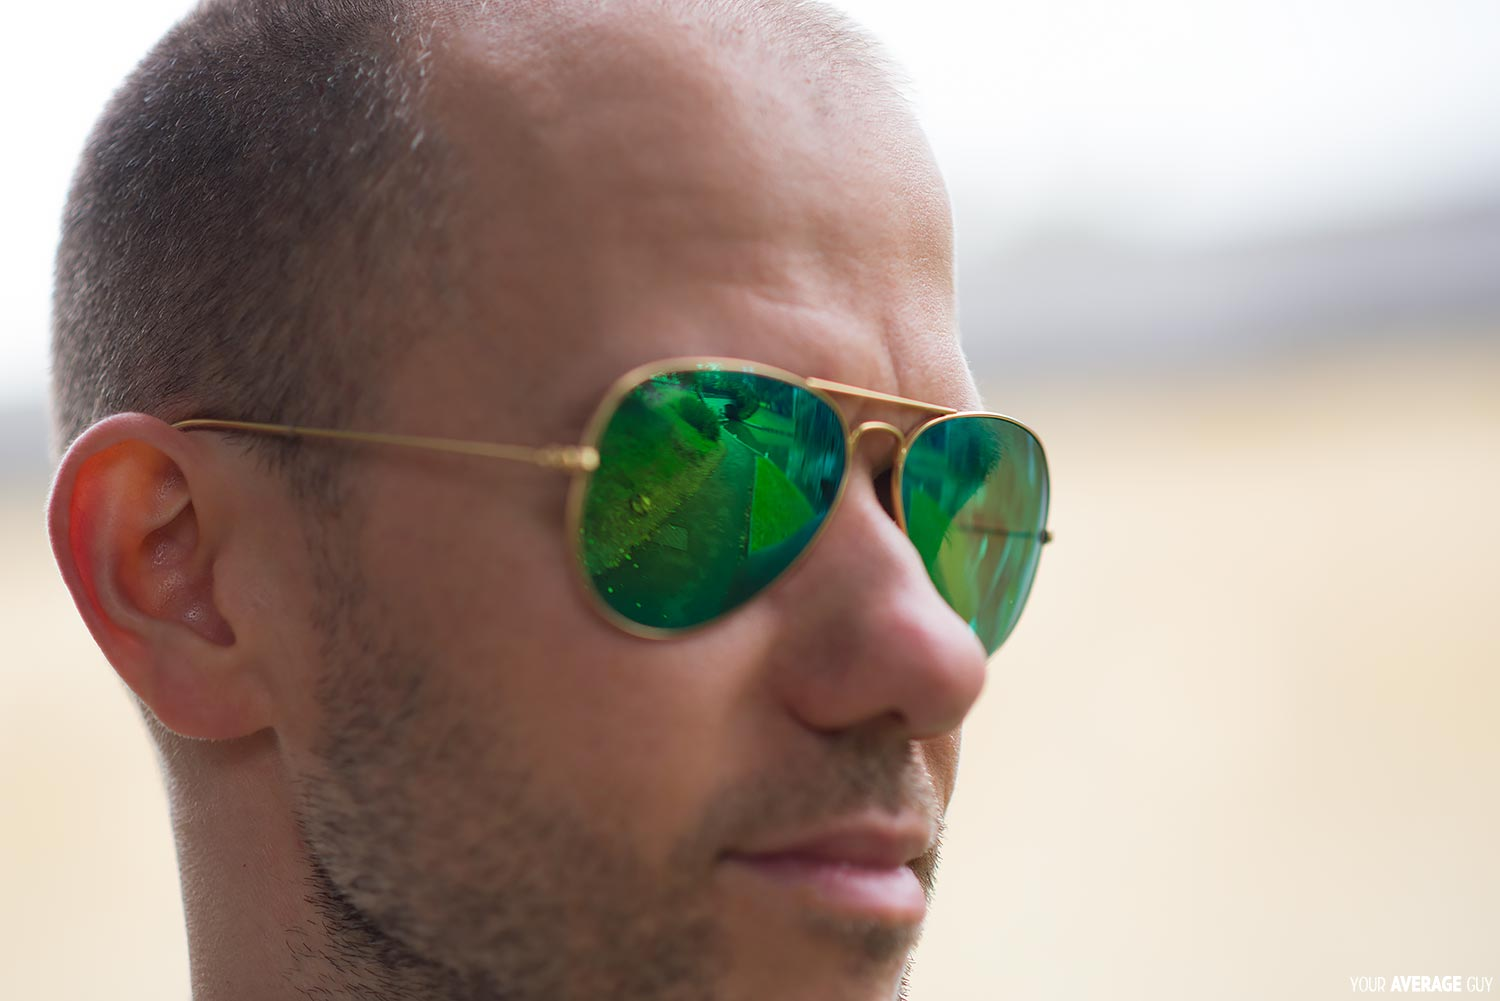 Your-Average-Guy-Style-Ray-Bay-Sunglasses-Flash-Lenses